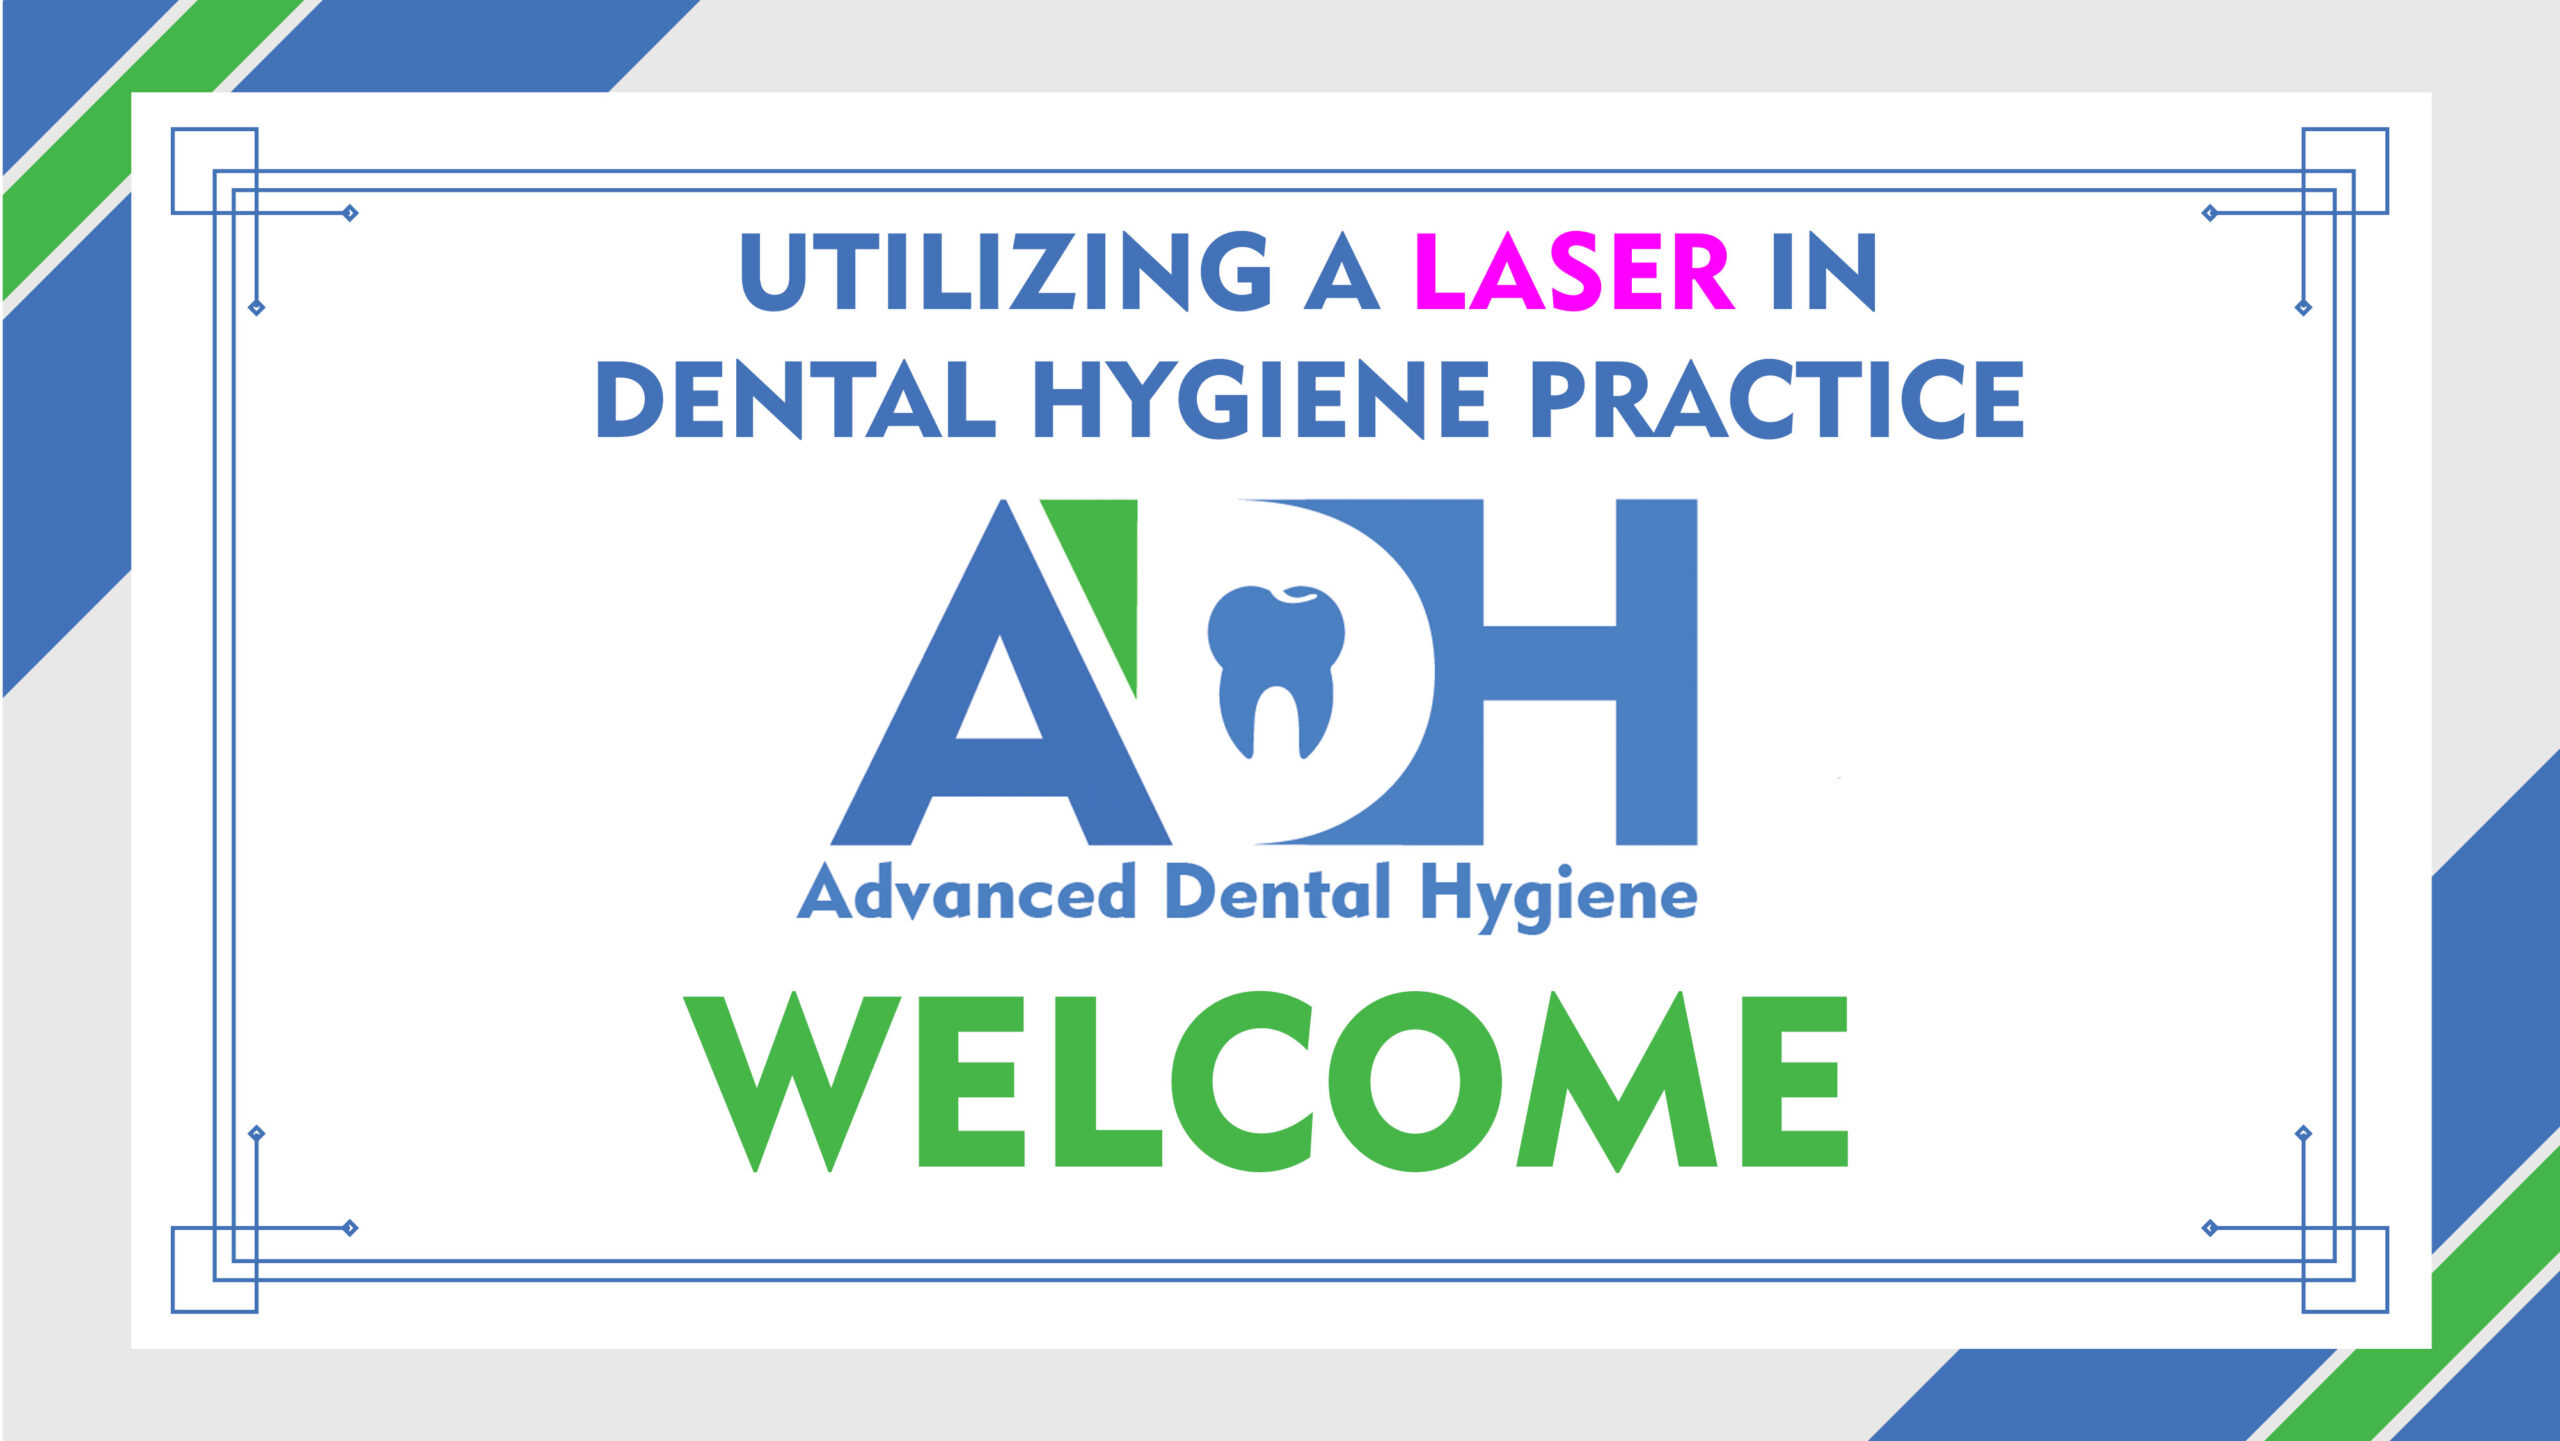 Utilizing a Laser in Dental Hygiene Practice